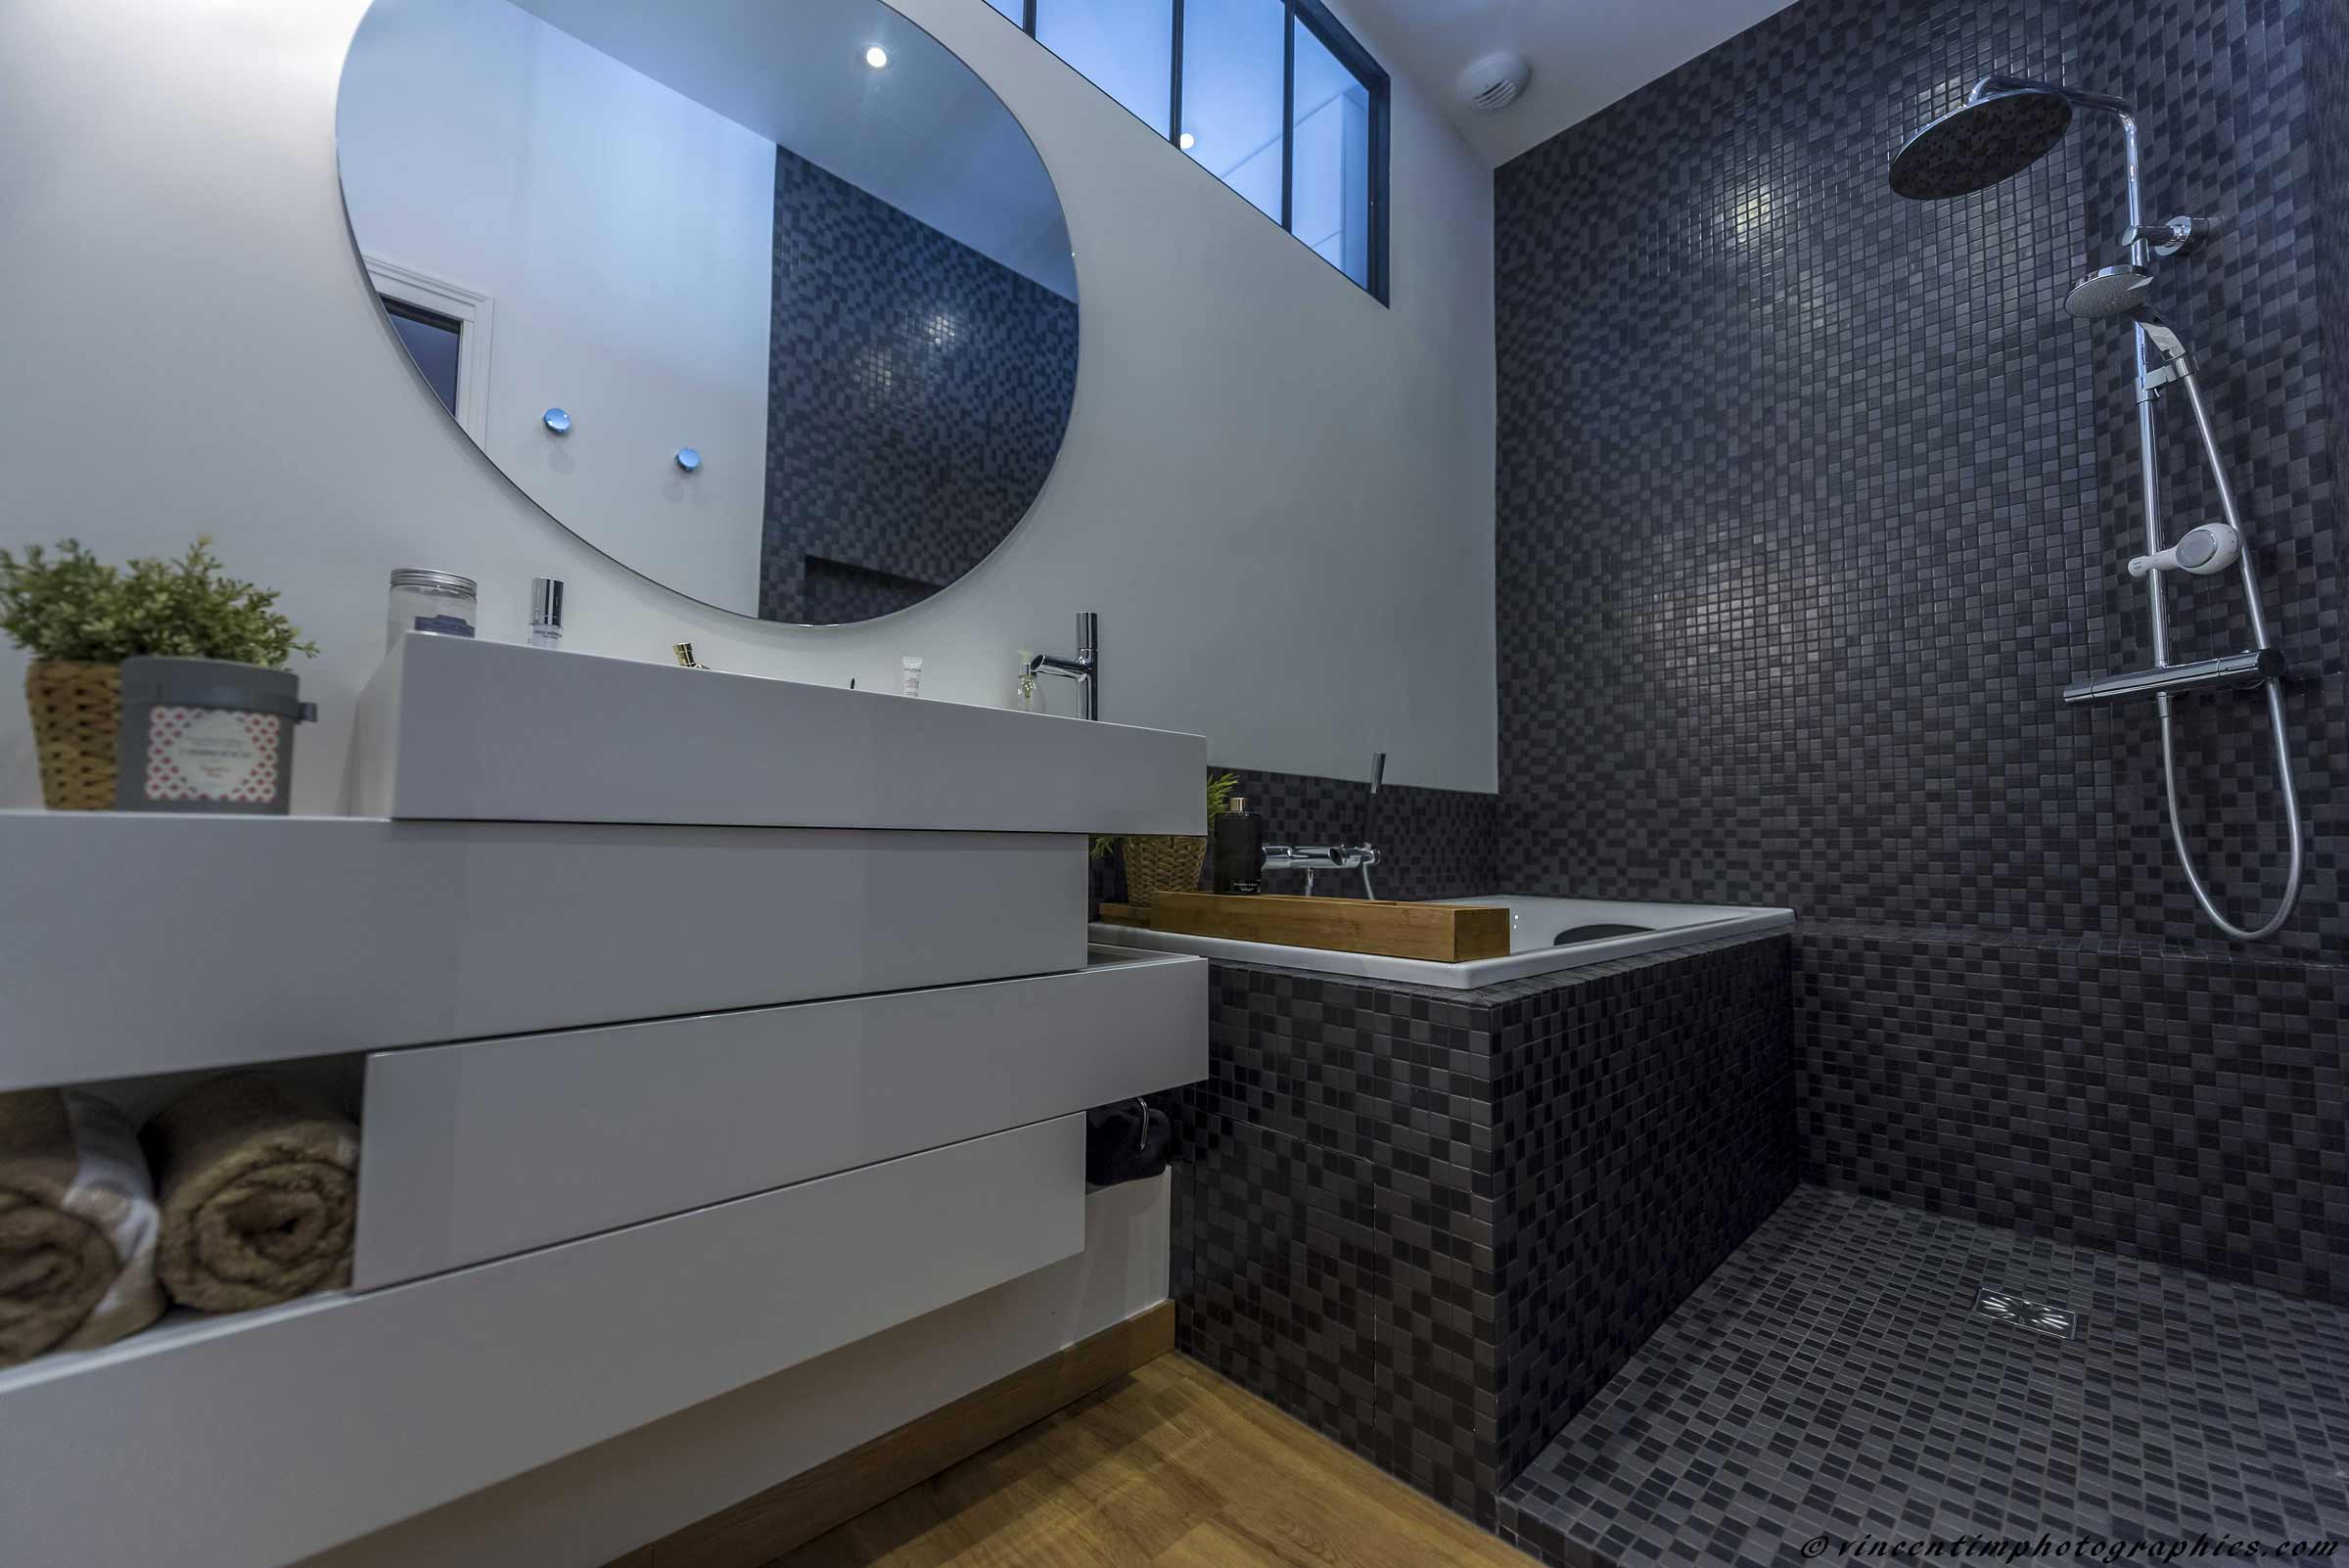 mosaique baignoire carrelage hexagonal tendance ides de couleurs et designs with mosaique. Black Bedroom Furniture Sets. Home Design Ideas